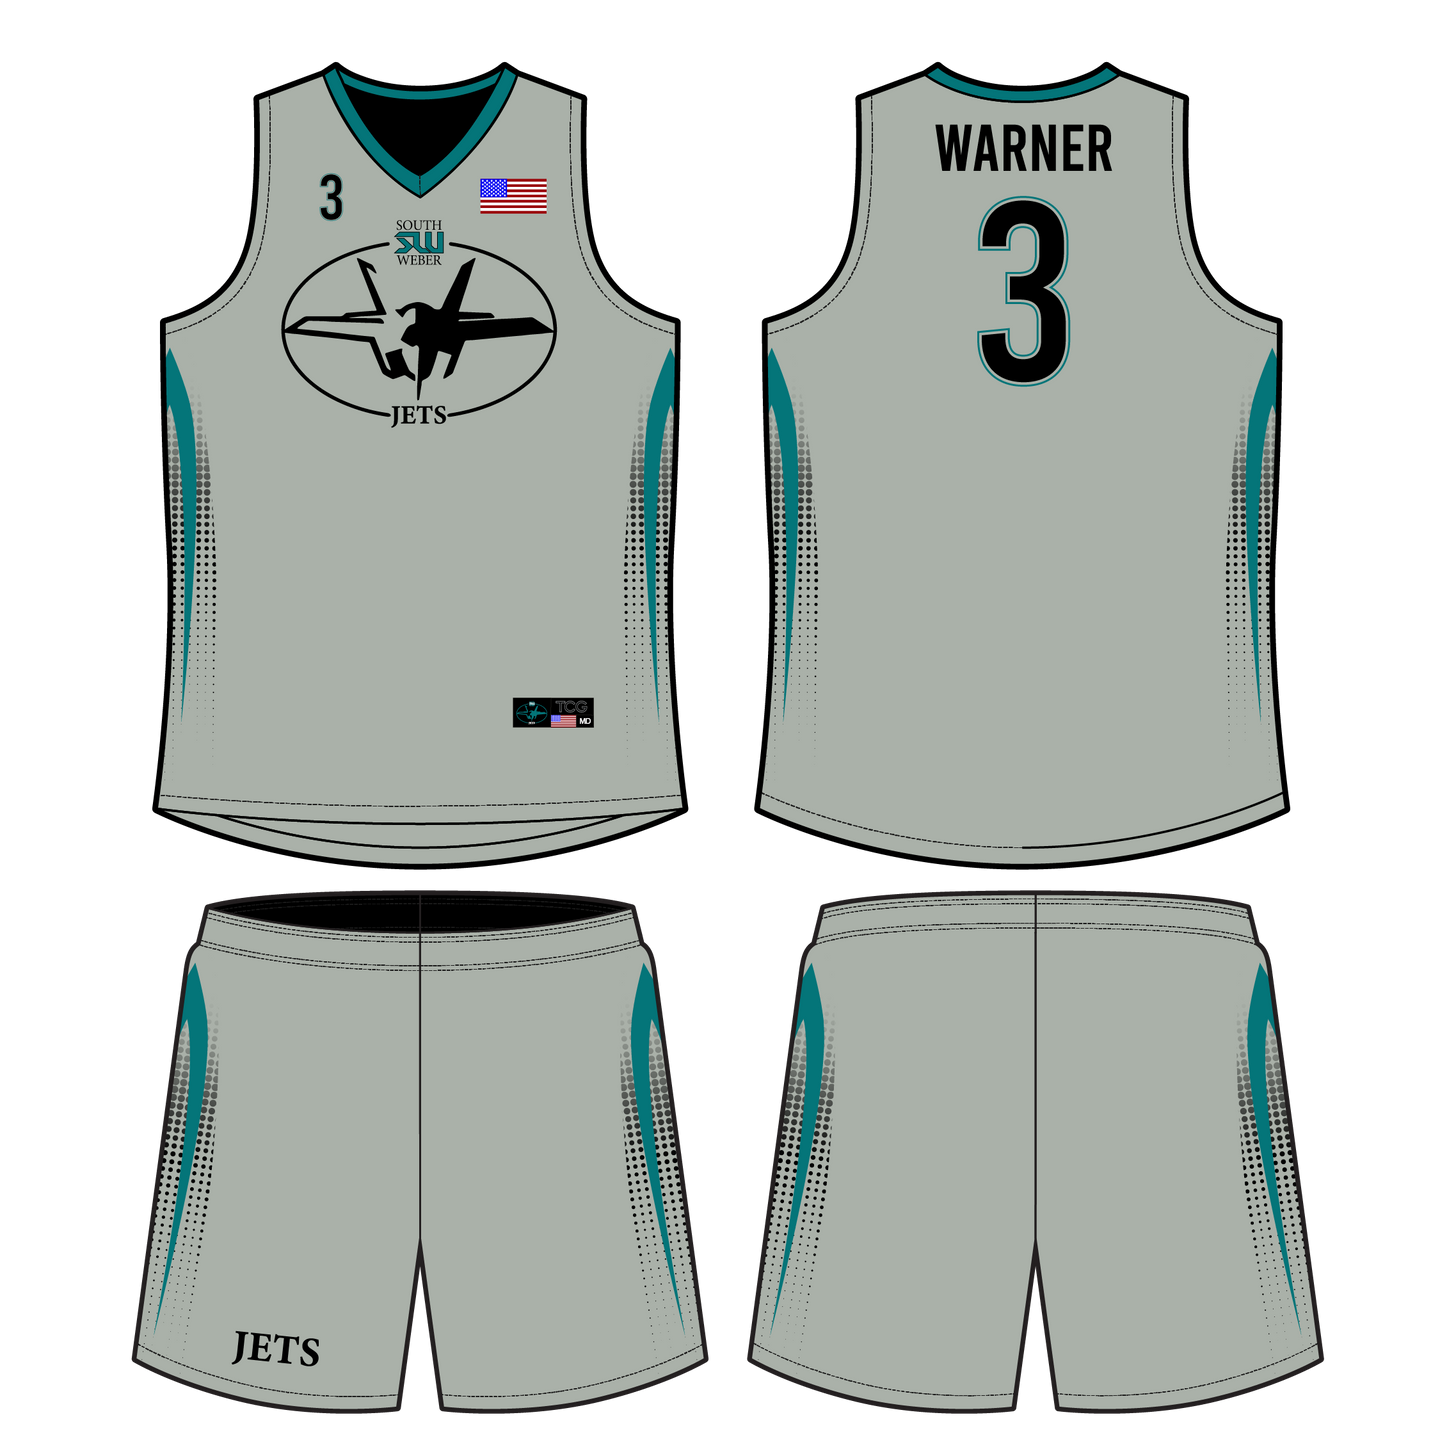 Youth South Weber Reversible Basketball Uniform